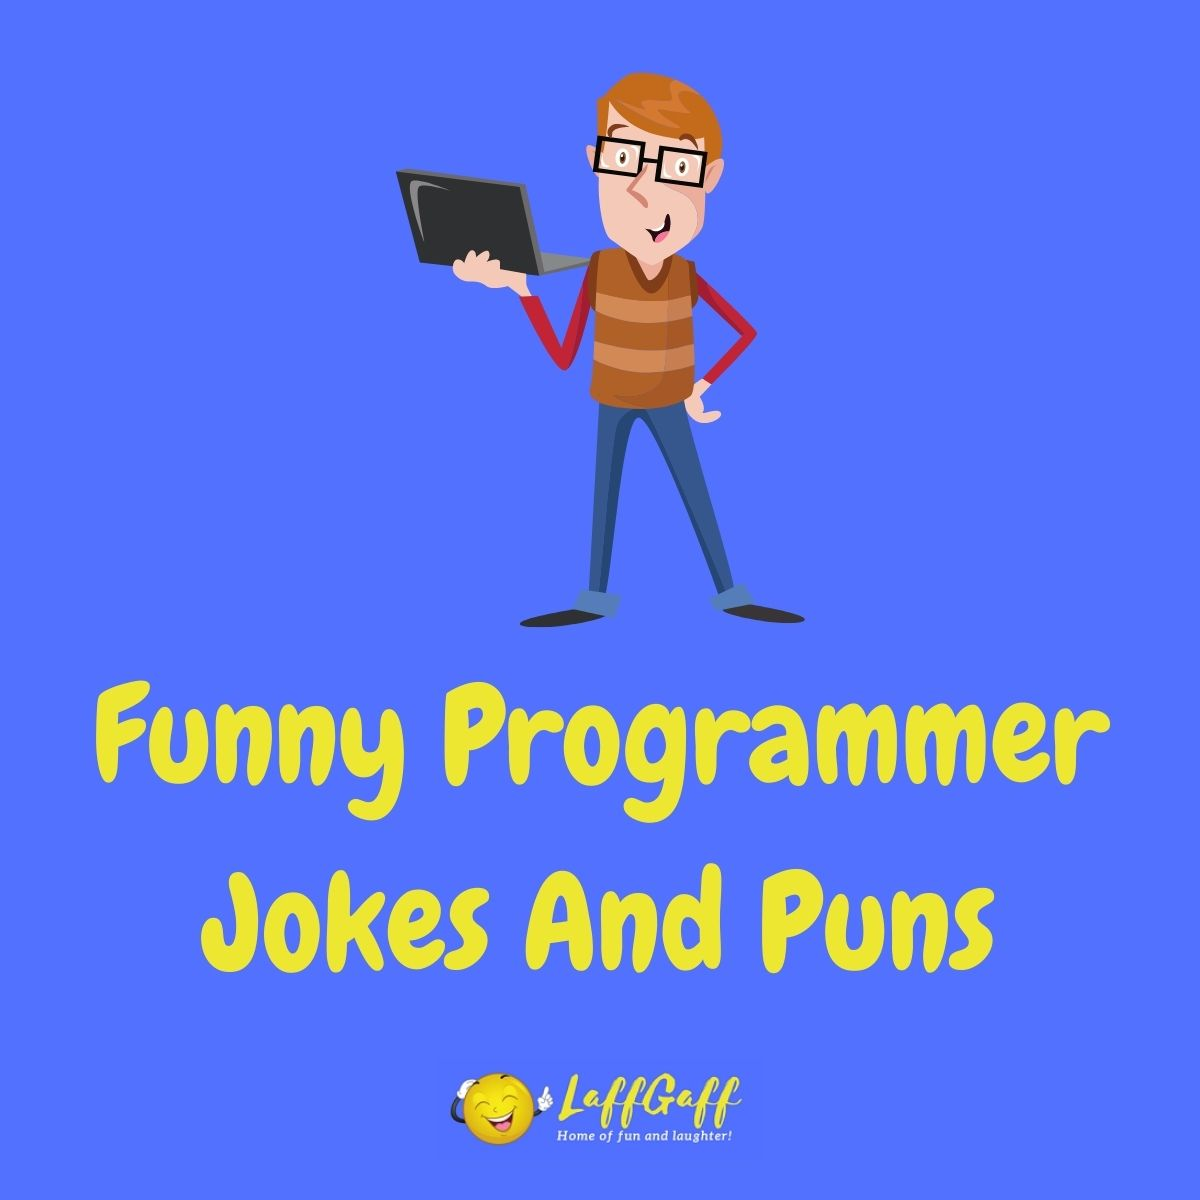 Featured image for a page of funny programmer jokes and puns.